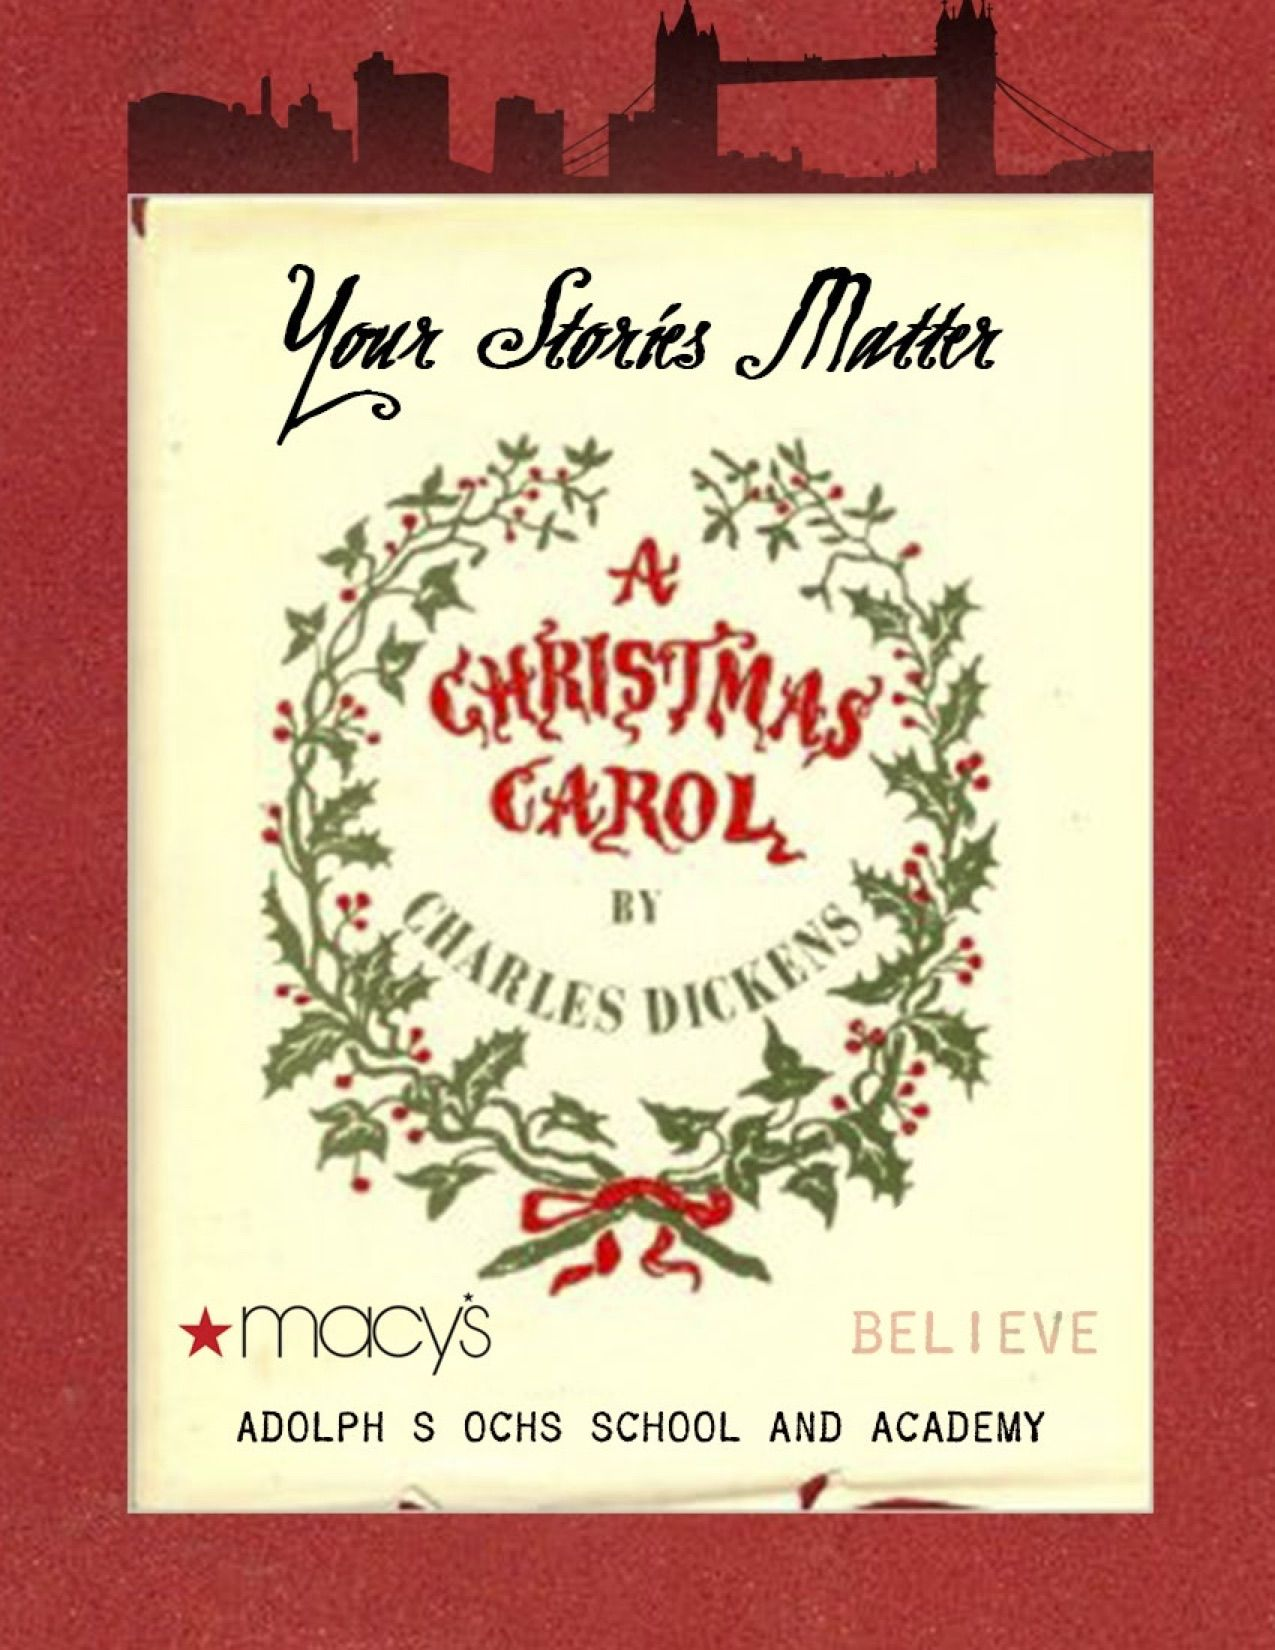 """We are excited to have been awarded a special grant from Macy's New York for our third season! We are collaborating with Macy's to bring our original Dickens and Carol education program called 'Your Stories Matter"""" to PS111 in Hell's Kitchen. We teach them Dickens own amazing story of overcoming poverty and great adversity as a boy, to become one of the greatest writers who has ever lived whose works have made and continue to make a contribution to the world. We will explore his enduring…"""